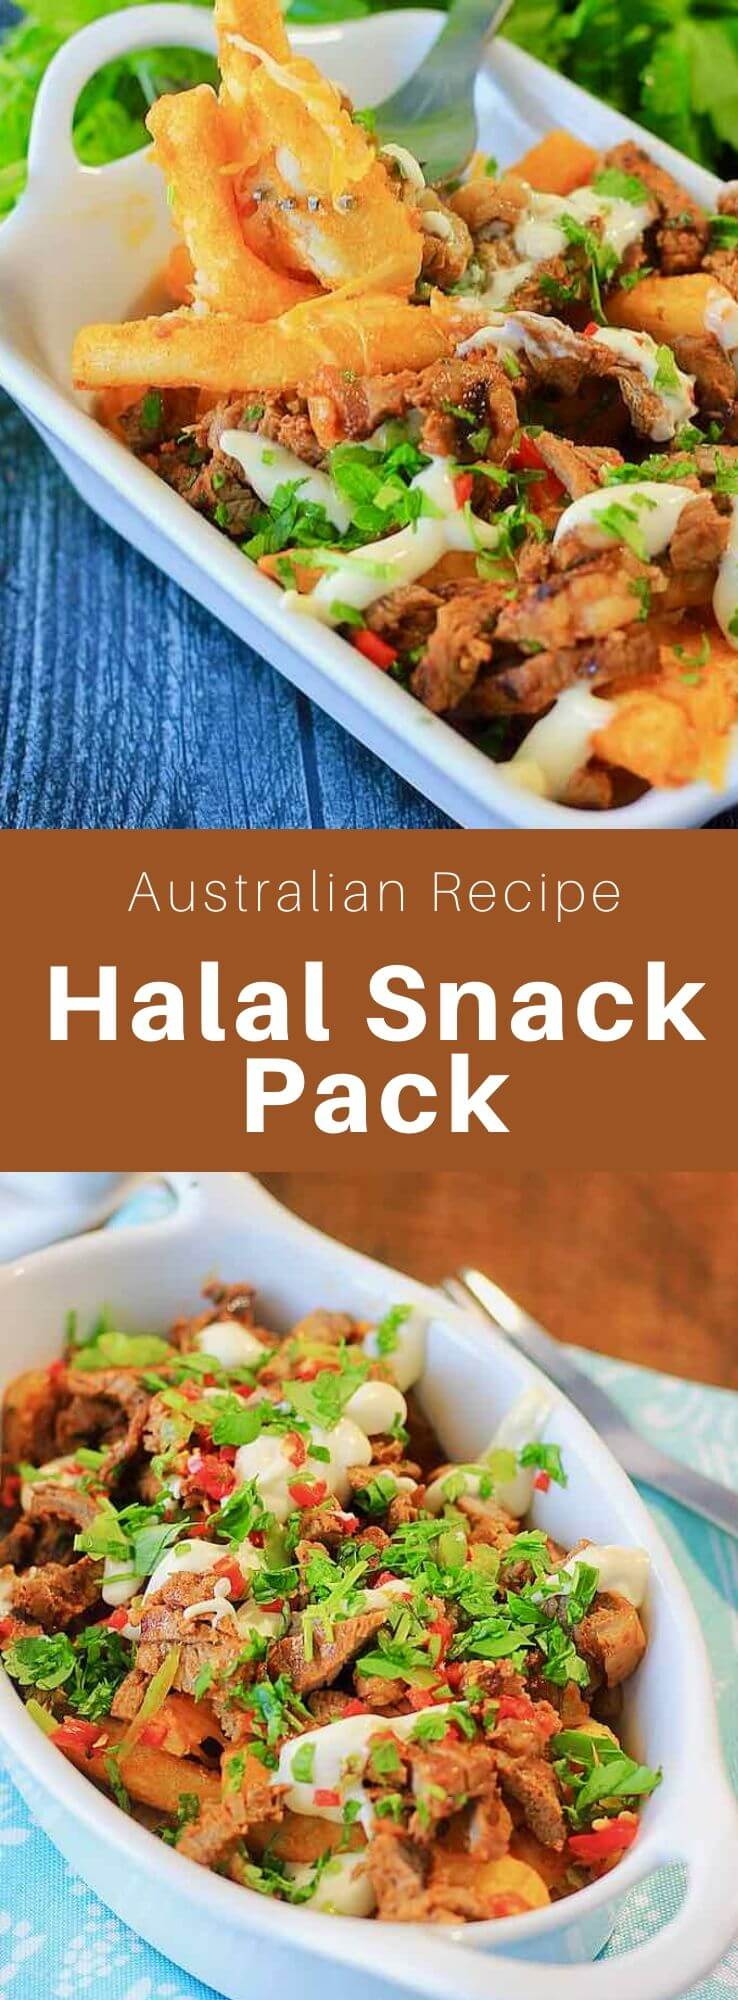 The halal snack pack is a dish that was created in Australia with origins from the Middle East, composed of halal meat (lamb, chicken, or beef), fries, cheese and various sauces. #Australia #WorldCuisine #196flavors